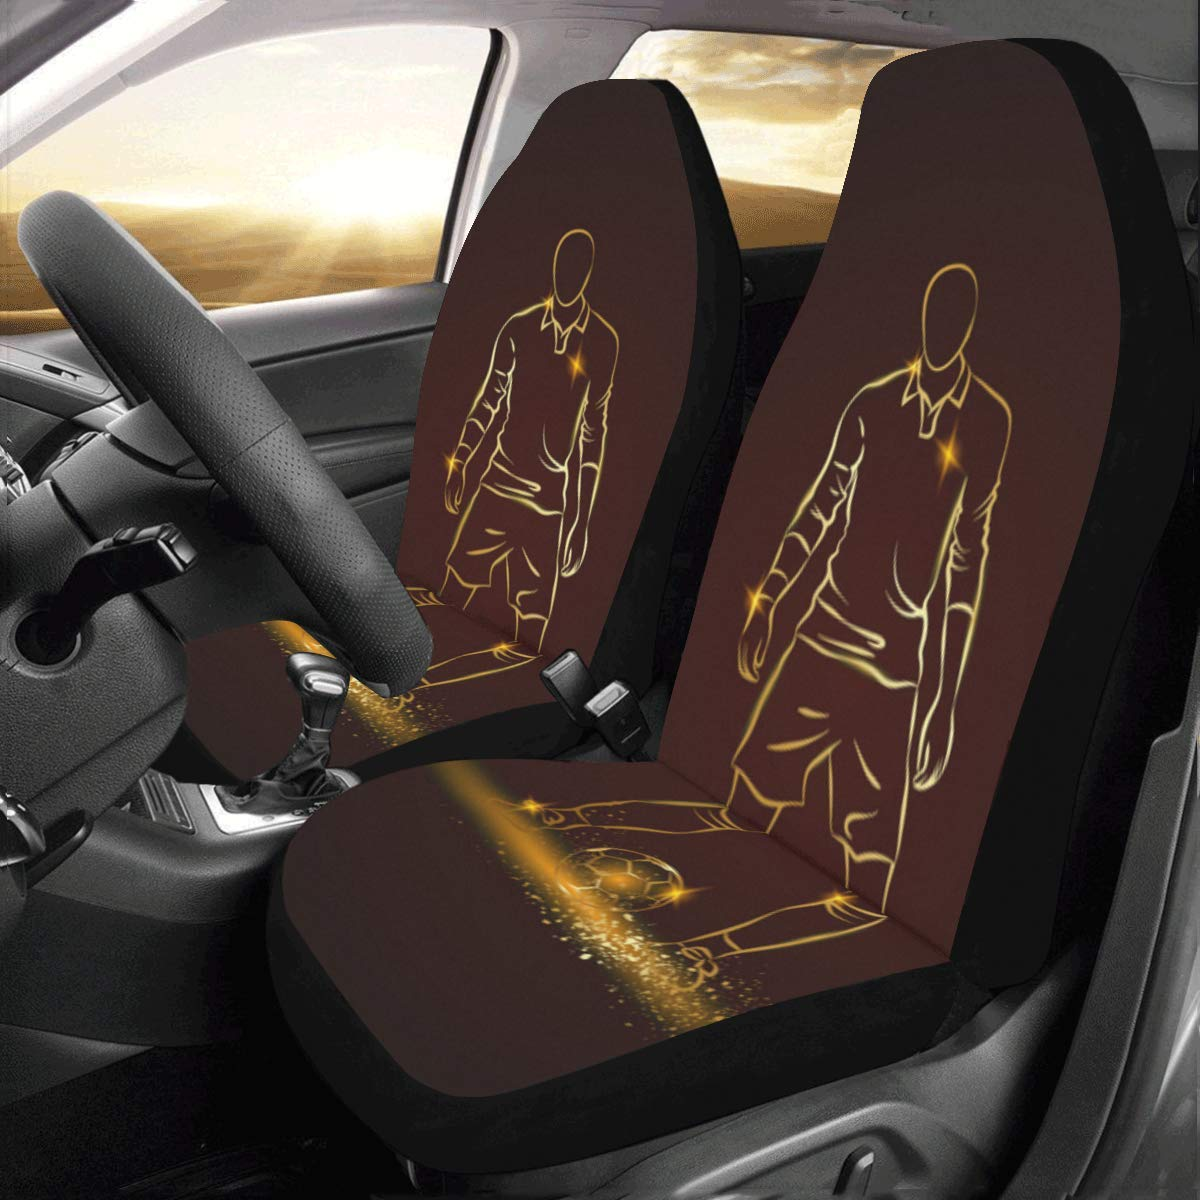 InterestPrint Front Car Seat Covers Set of 2 Design Basketball Fabric Protector Cases for Sedan Truck SUV Van